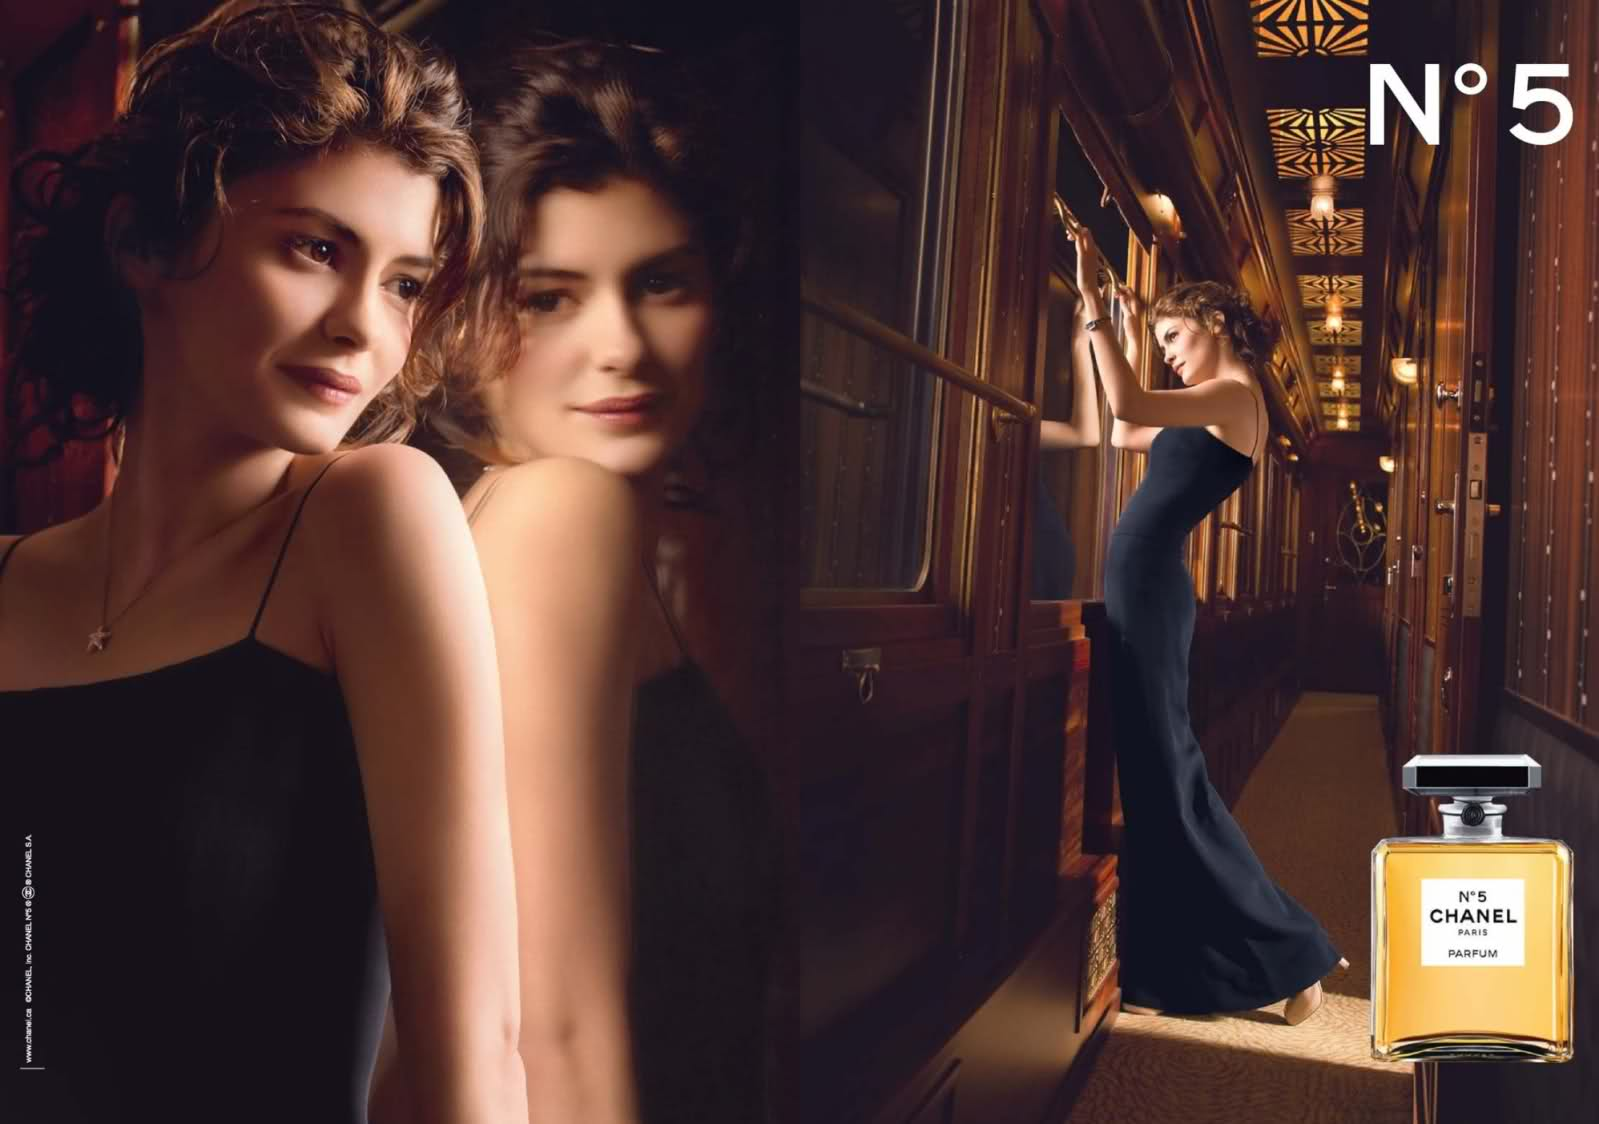 Audrey Tautou - Chanel N°5